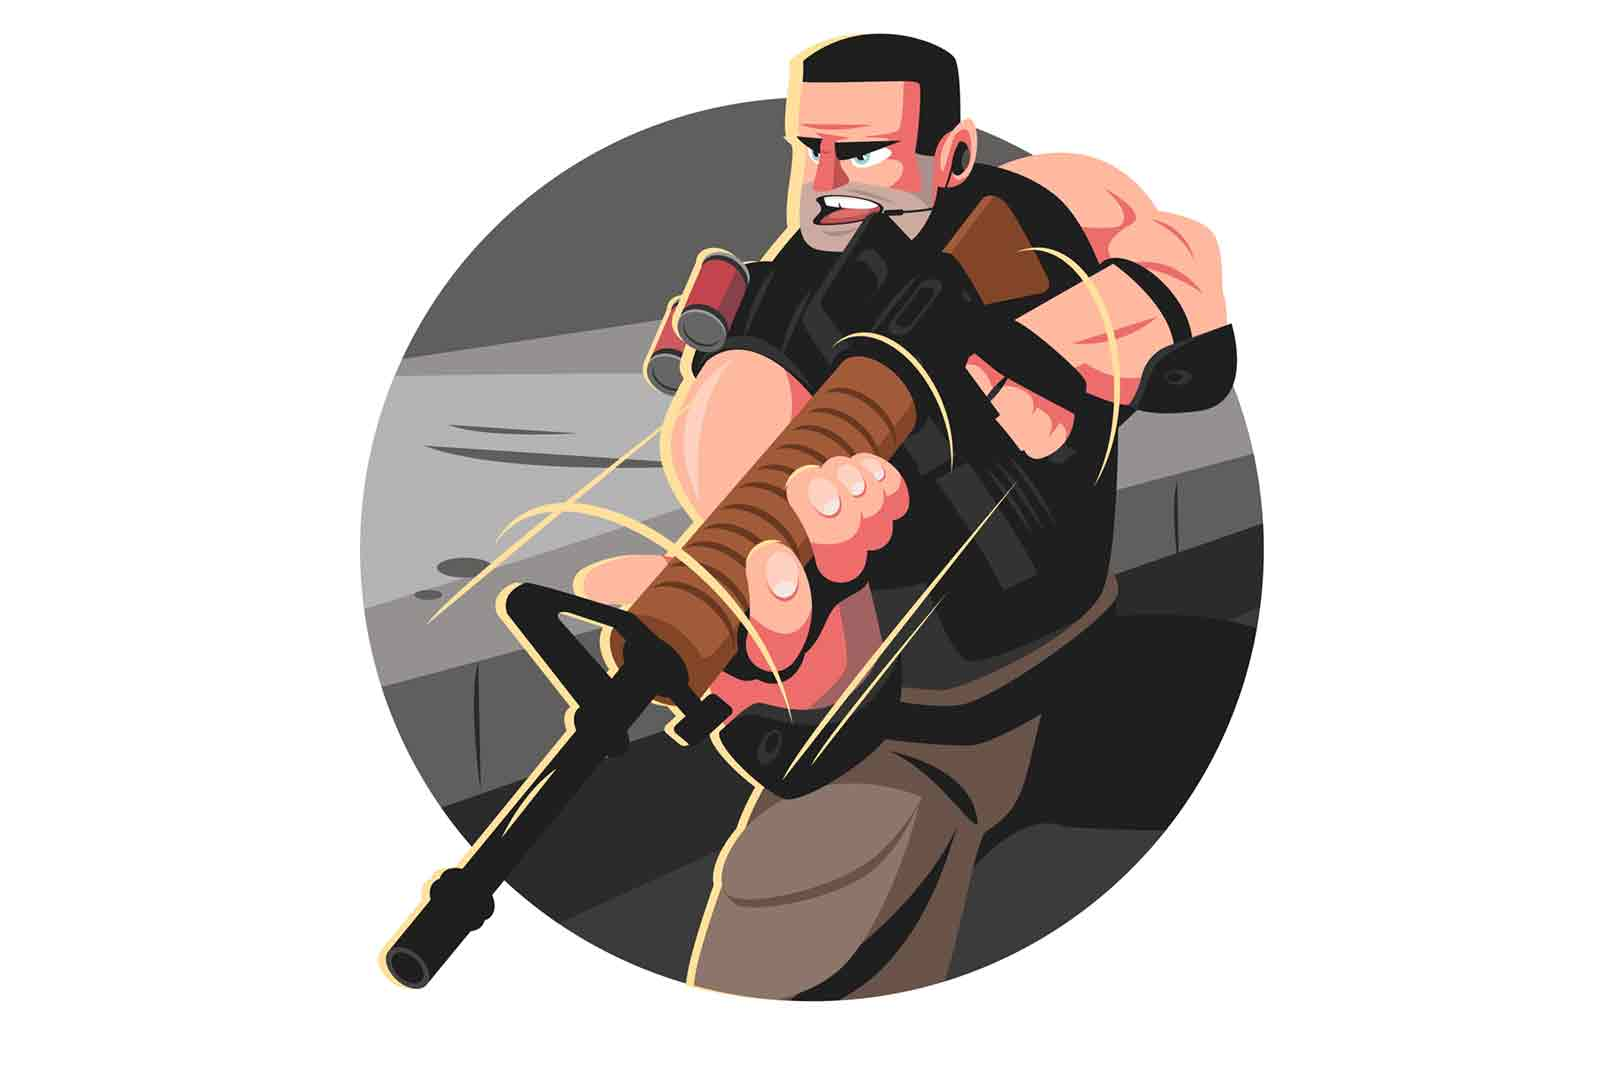 Man from special forces vector illustration. Guy in army combat uniform with weapon flat style. Male soldier at work. Military officer and guard service concept. Isolated on white background